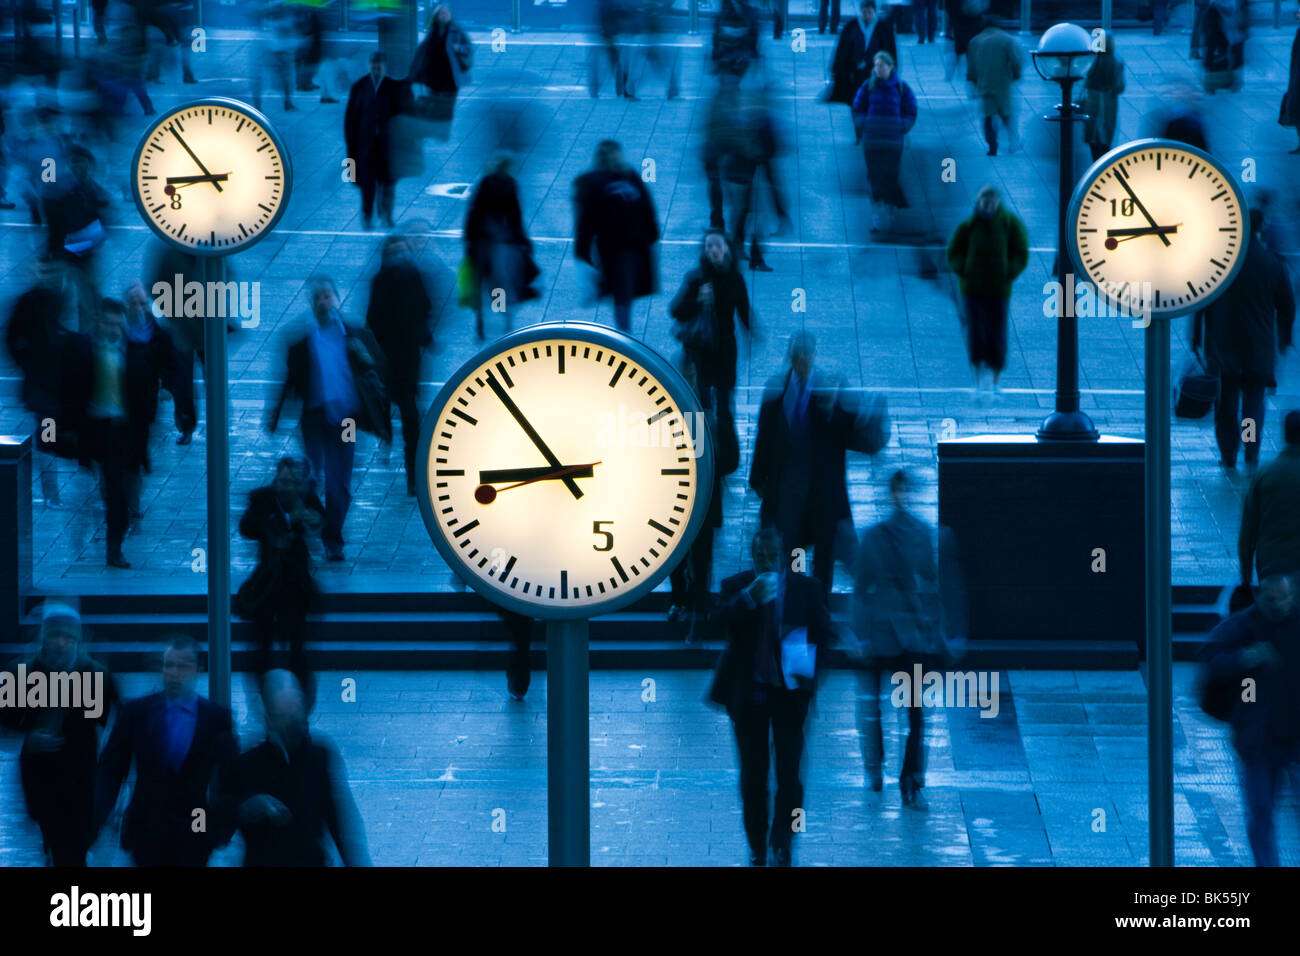 CLOCKS AND MOVING PEOPLE CANARY WHARF LONDON UK - Stock Image